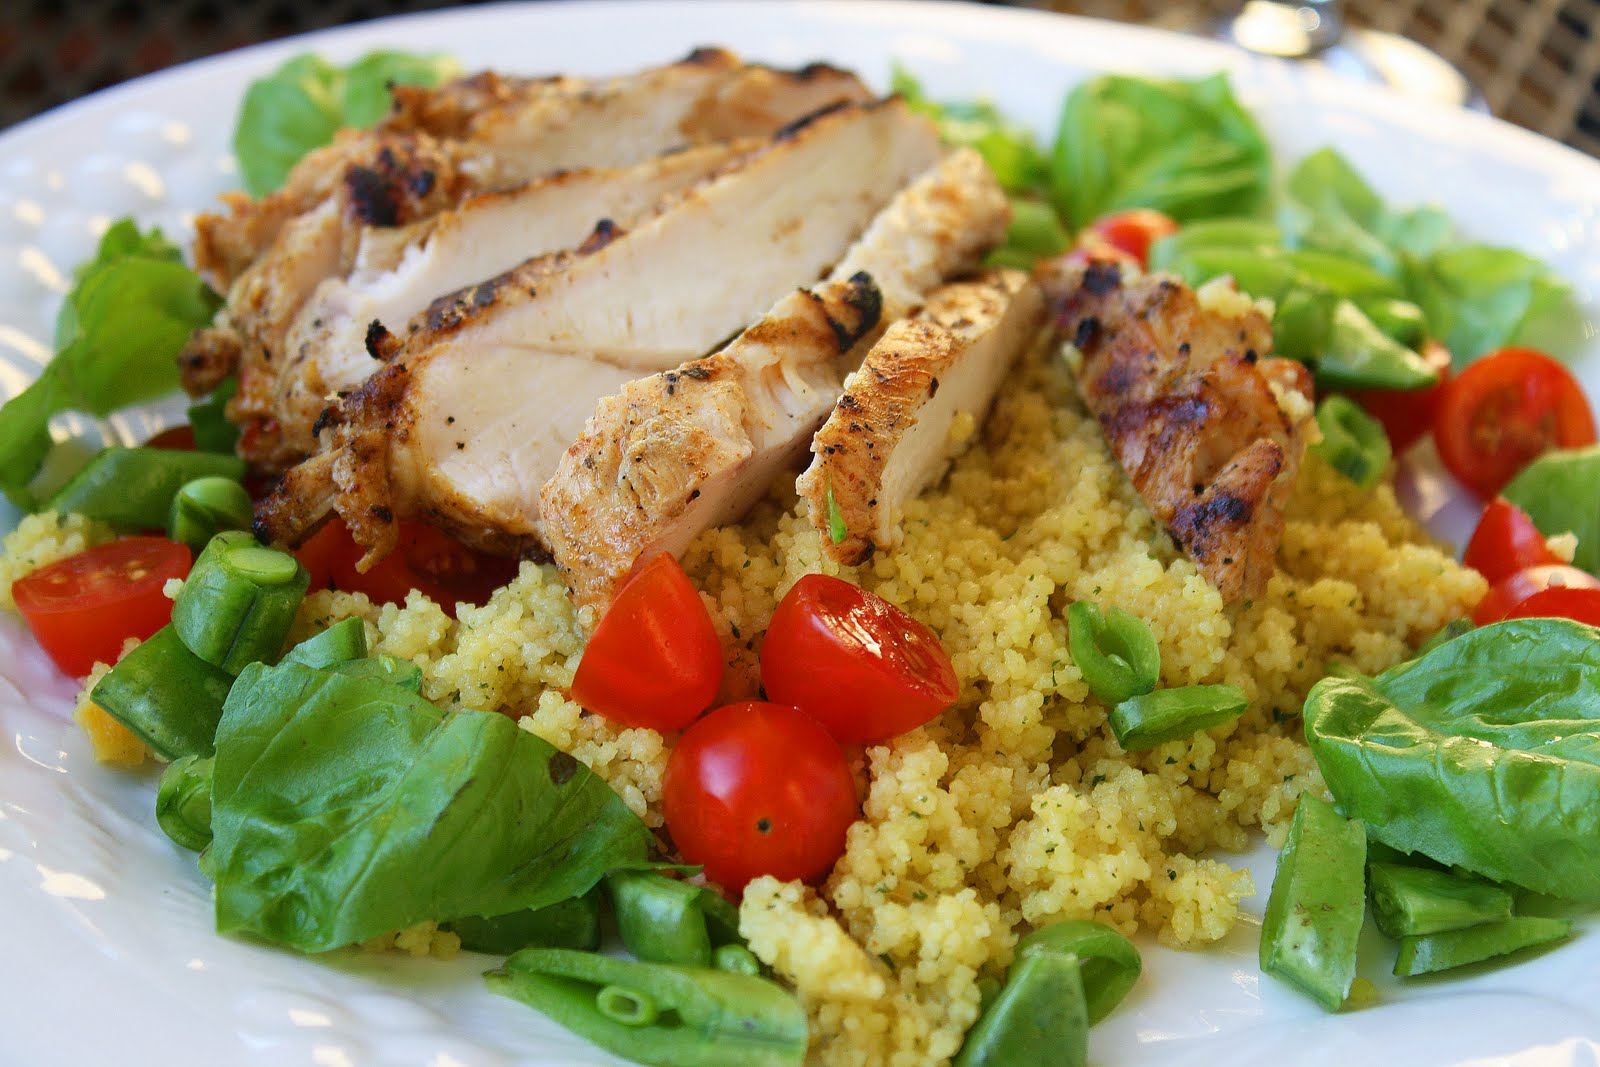 Spiced Chicken with Couscous Salad